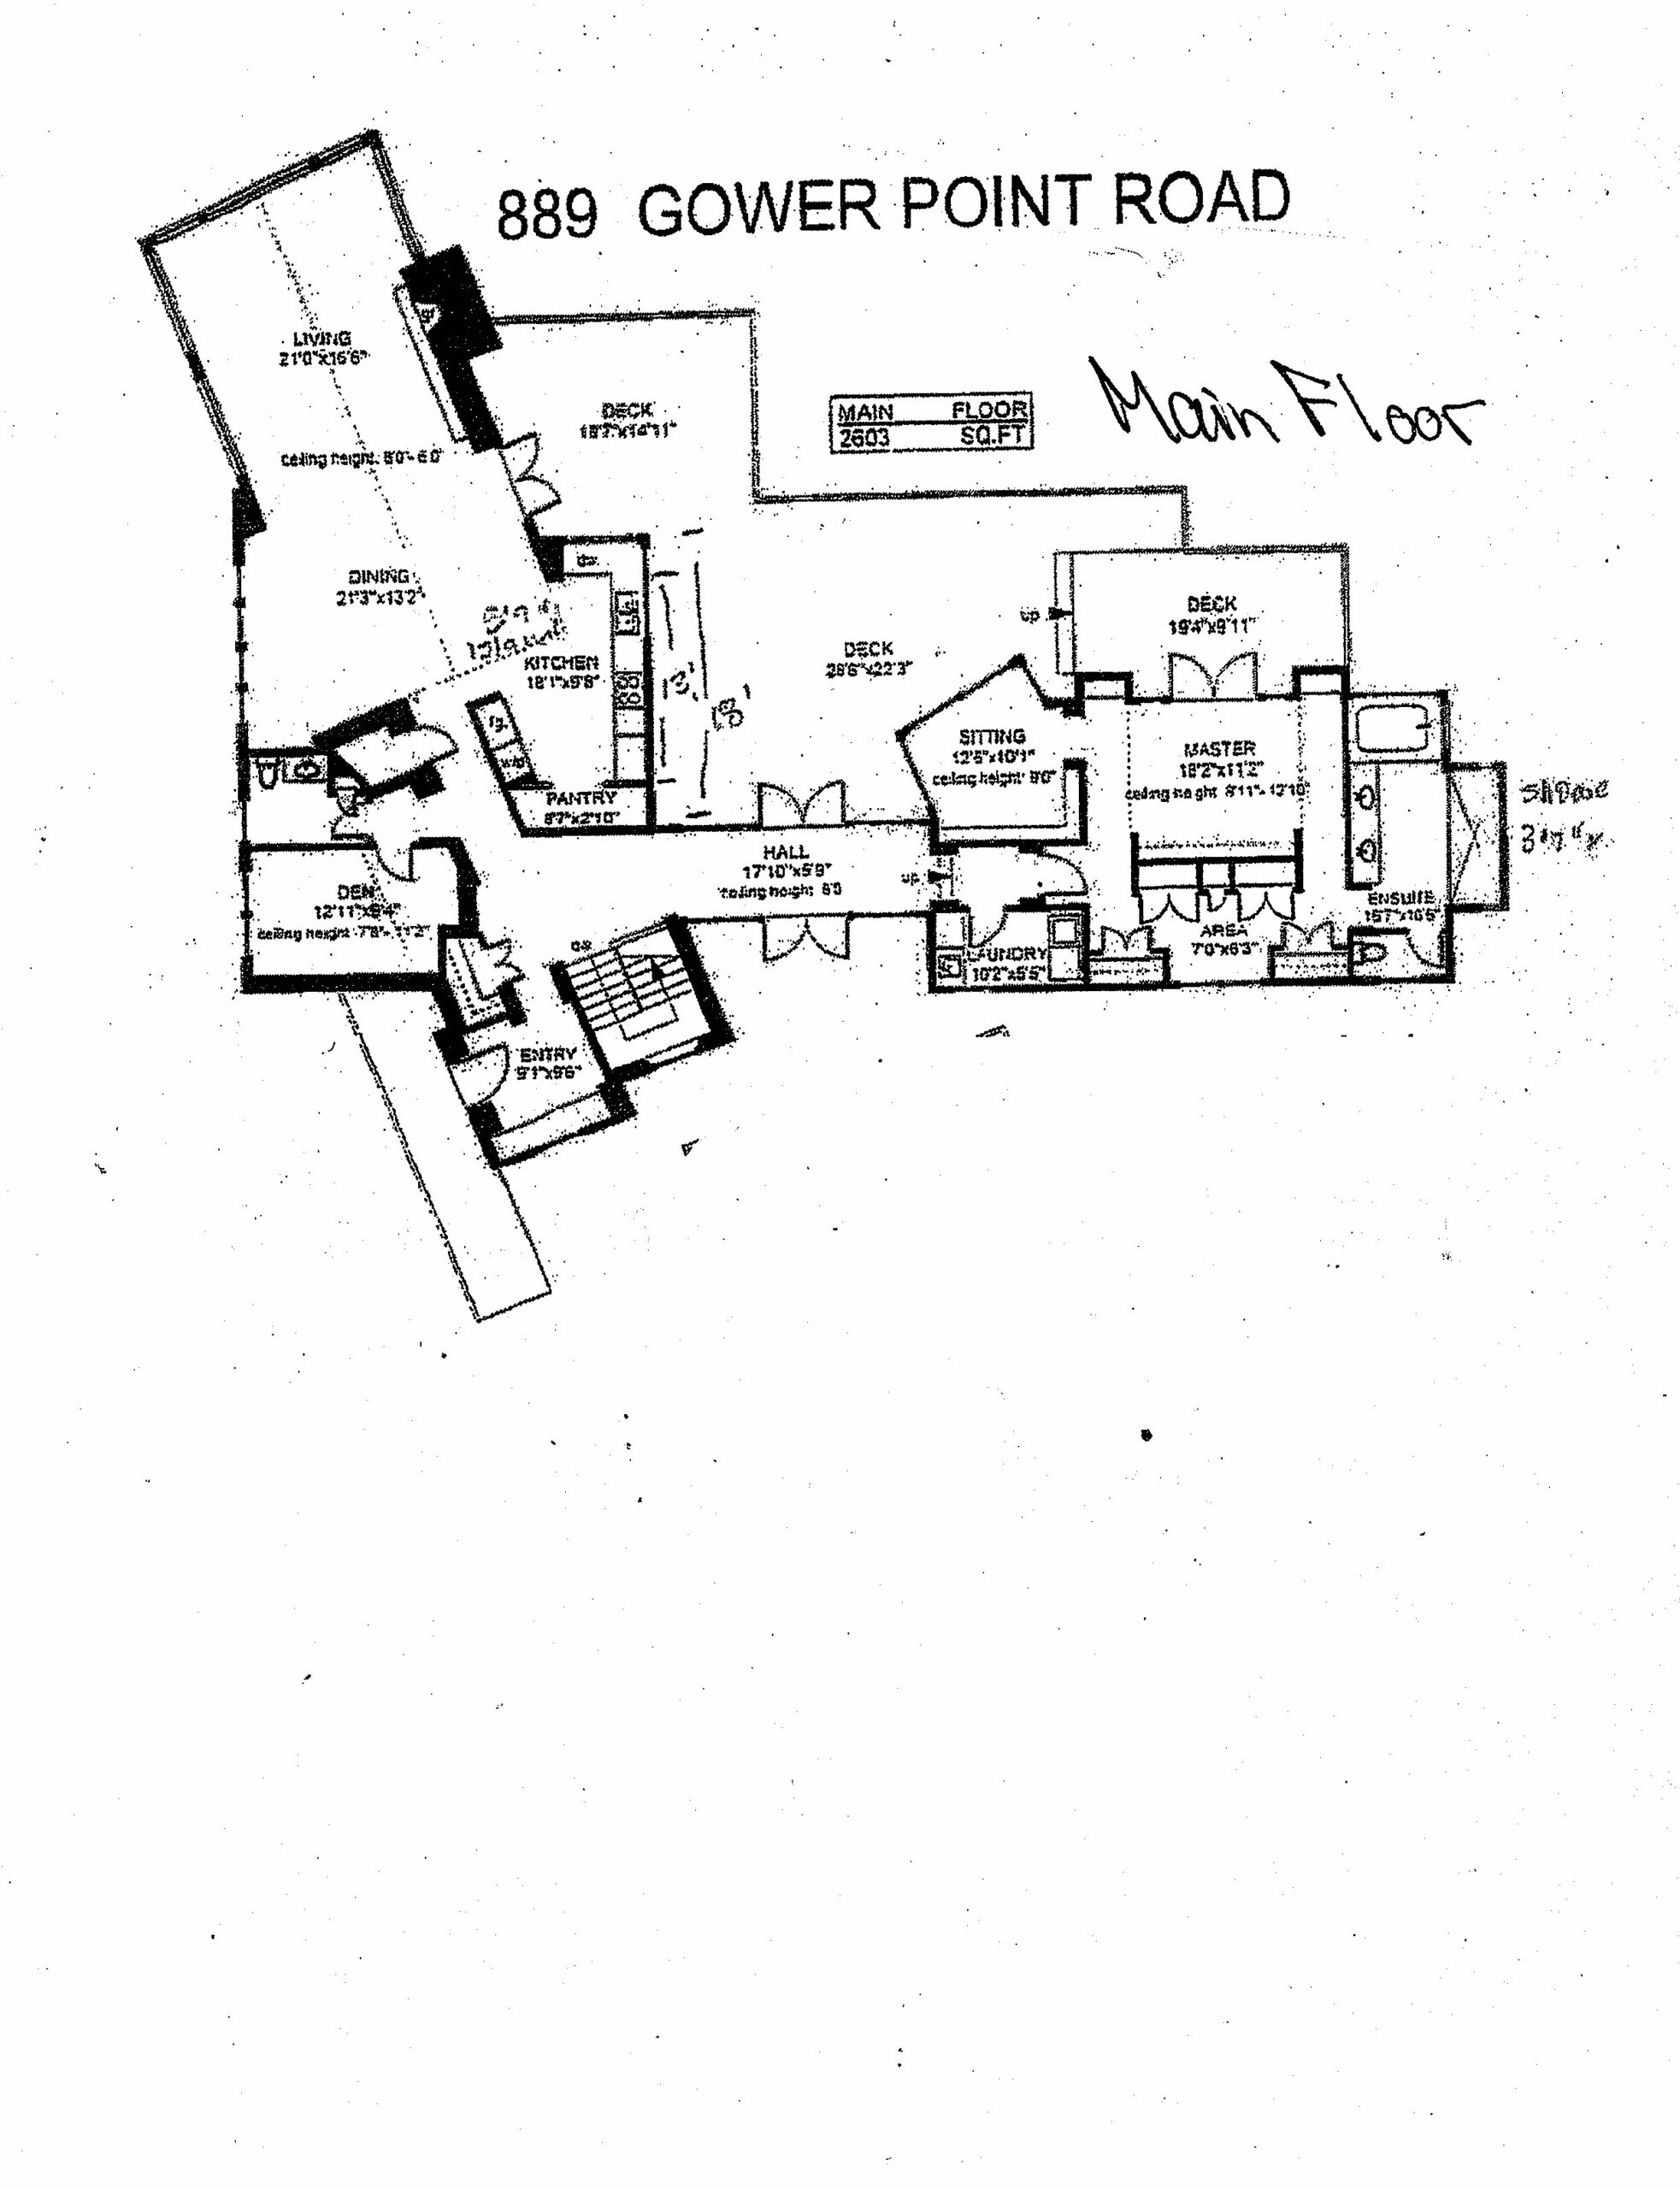 Main Floorplan 889 Gower Point